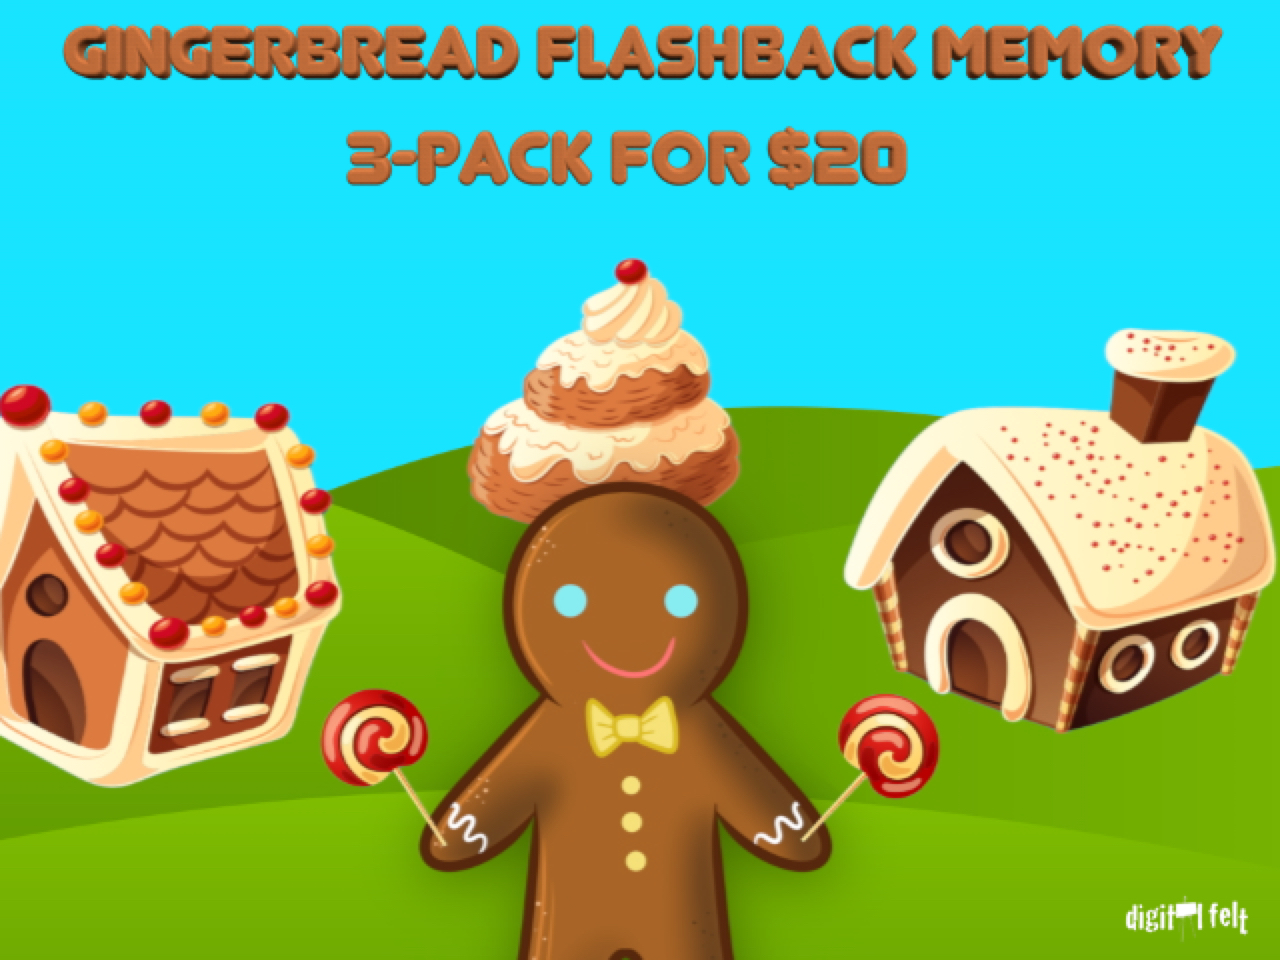 GINGERBREAD FLASHBACK MEMORY 3-PACK